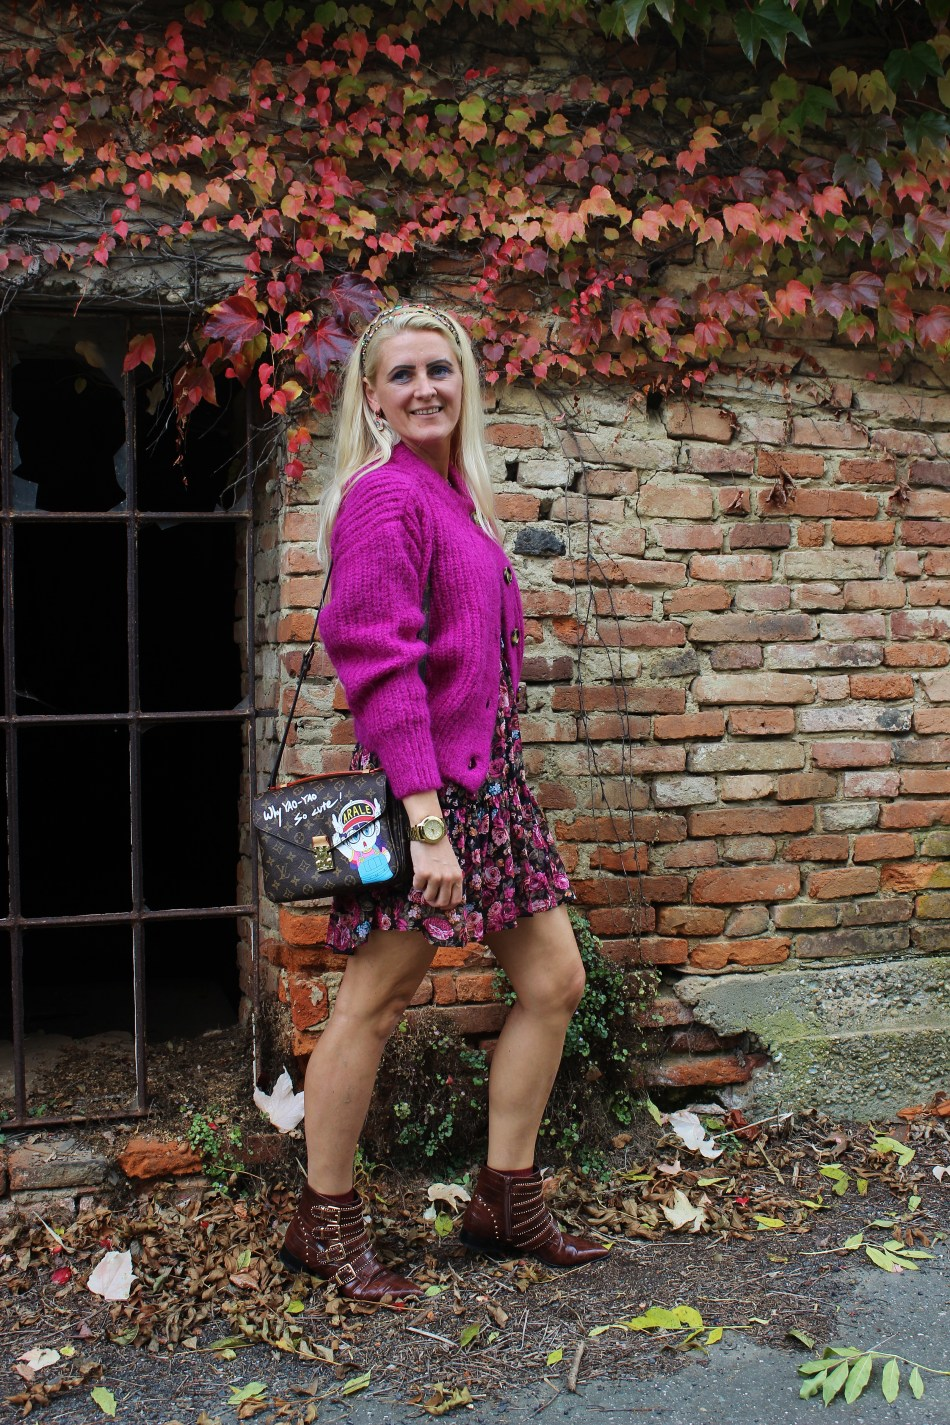 Cardigan-Floralprint-Dress-Boots-Deichmann-Studs-carrieslfiestyle-Tamara-Prutsch